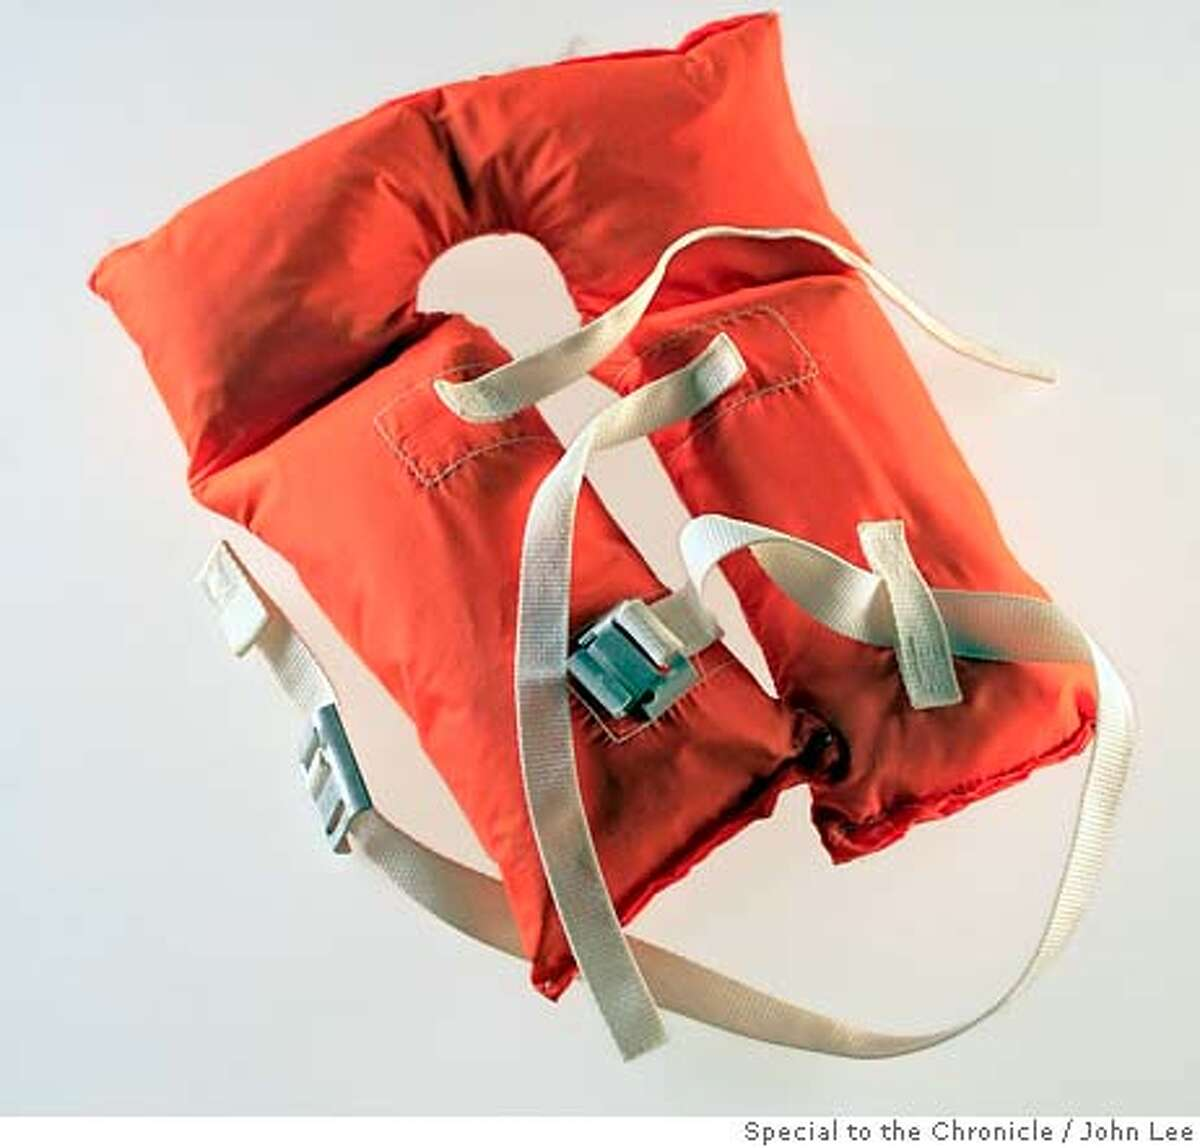 ###Live Caption:INSIGHT_23_NAVARRO_03_JOHNLEE.JPG Life vests for Brooks. By JOHN LEE/SPECIAL TO THE CHRONICLE###Caption History:INSIGHT_23_NAVARRO_03_JOHNLEE.JPG Life vests for Brooks. By JOHN LEE/SPECIAL TO THE CHRONICLE###Notes:###Special Instructions: